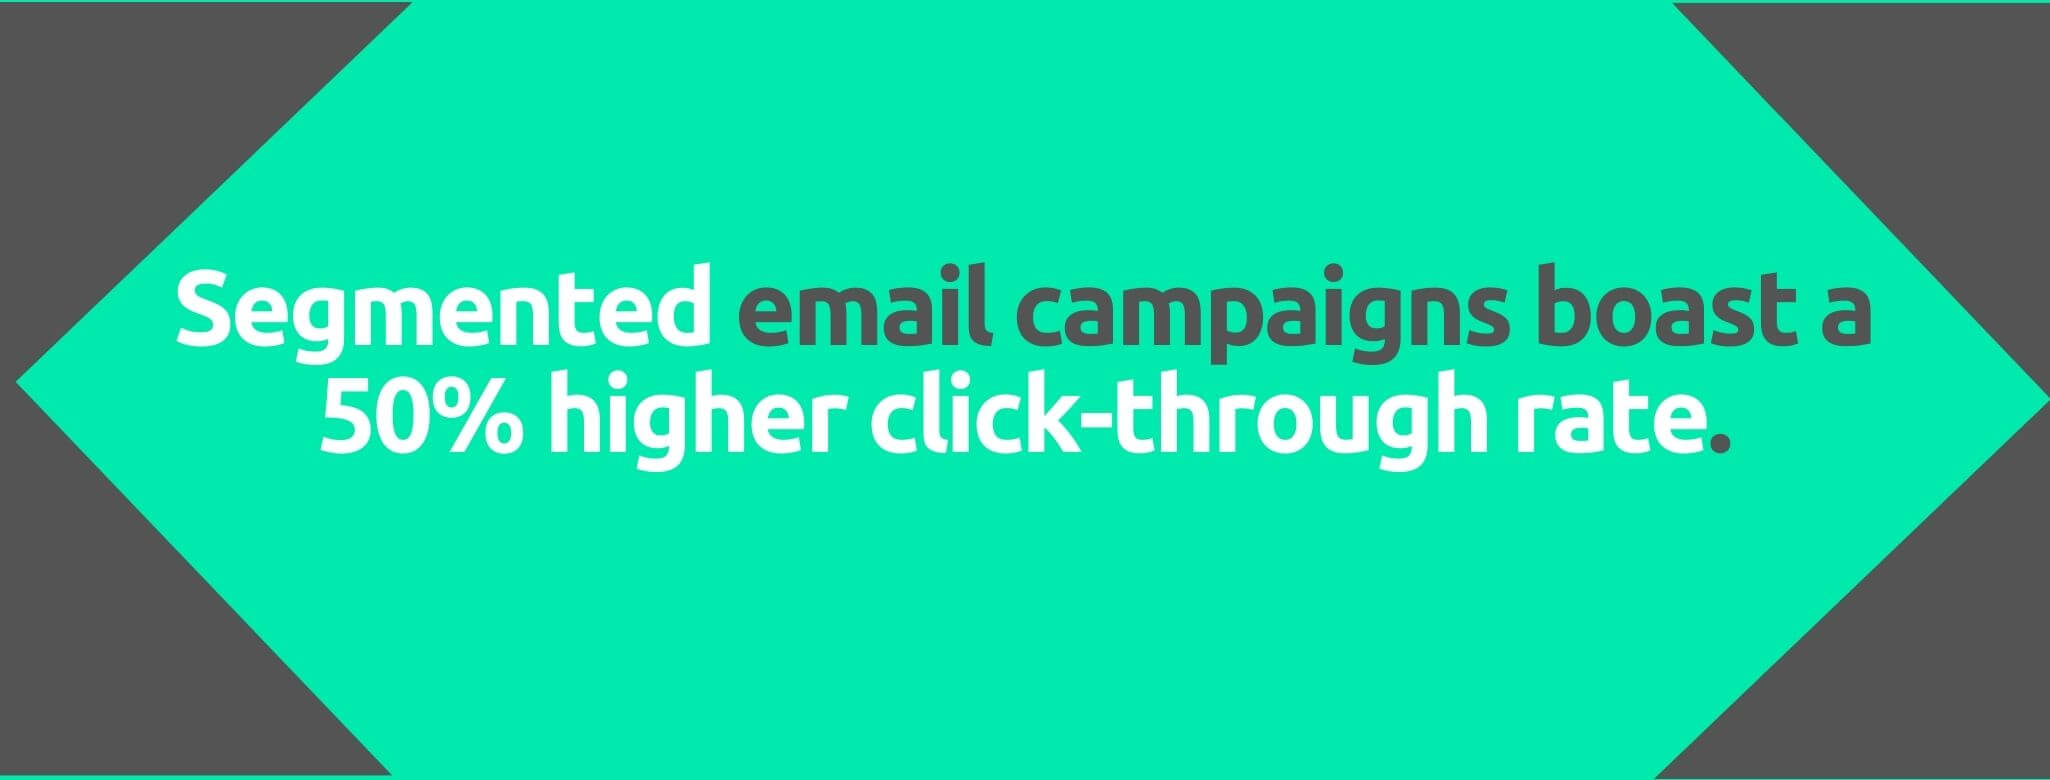 Segmented email campaigns boast a 50% higher click-through rate - 80+ Email Marketing Stats - Replyco Helpdesk Software for eCommerce